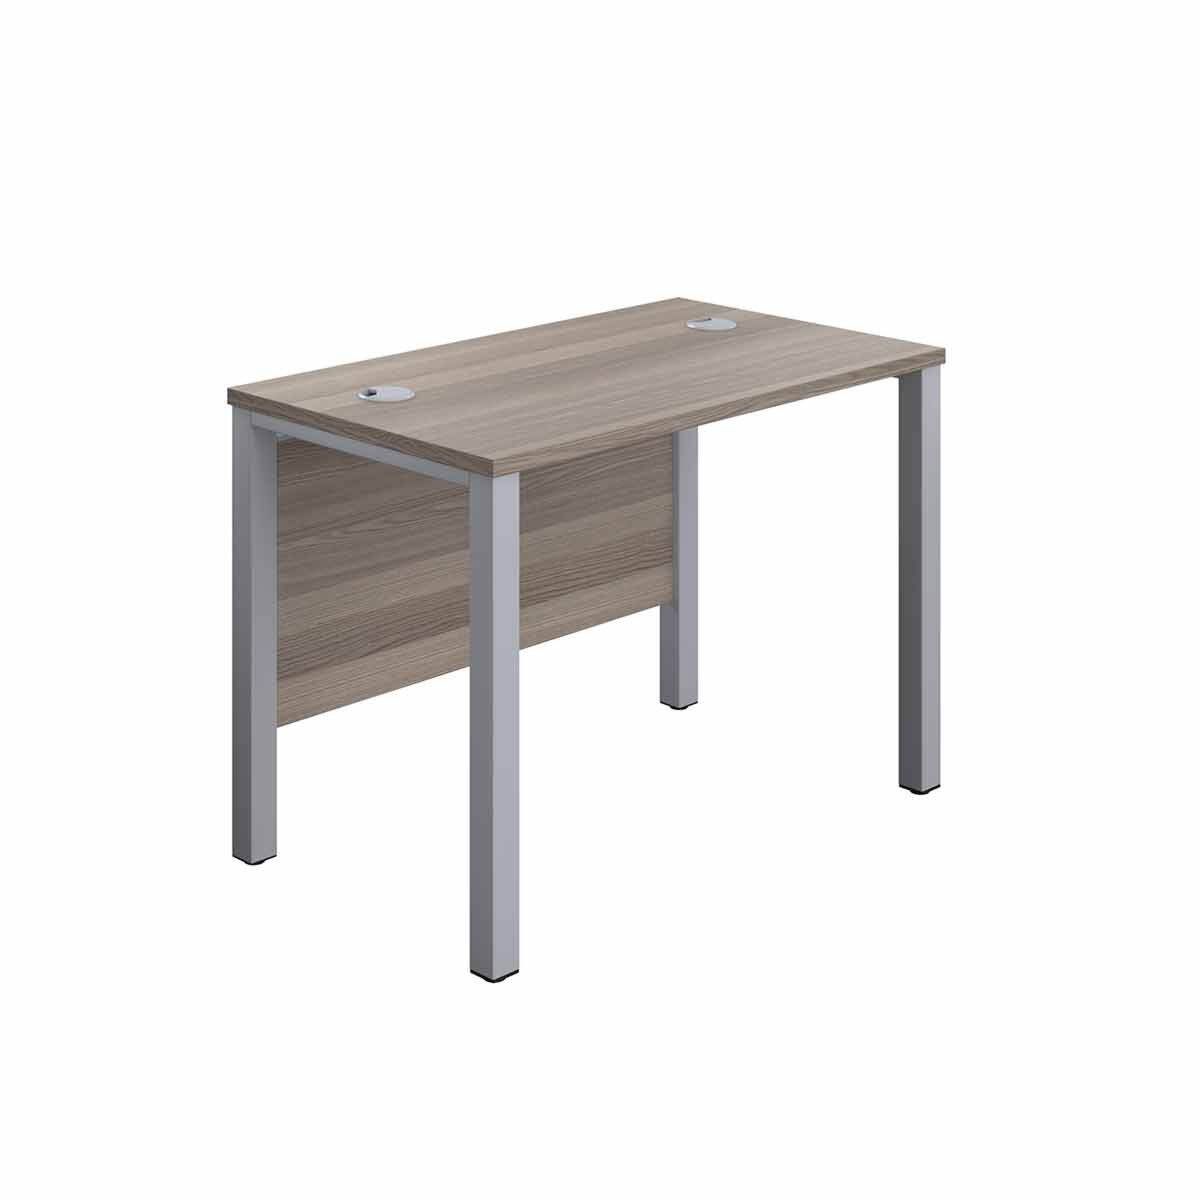 TC Office Silver Goal Post Rectangular Desk 100cm Grey Oak effect